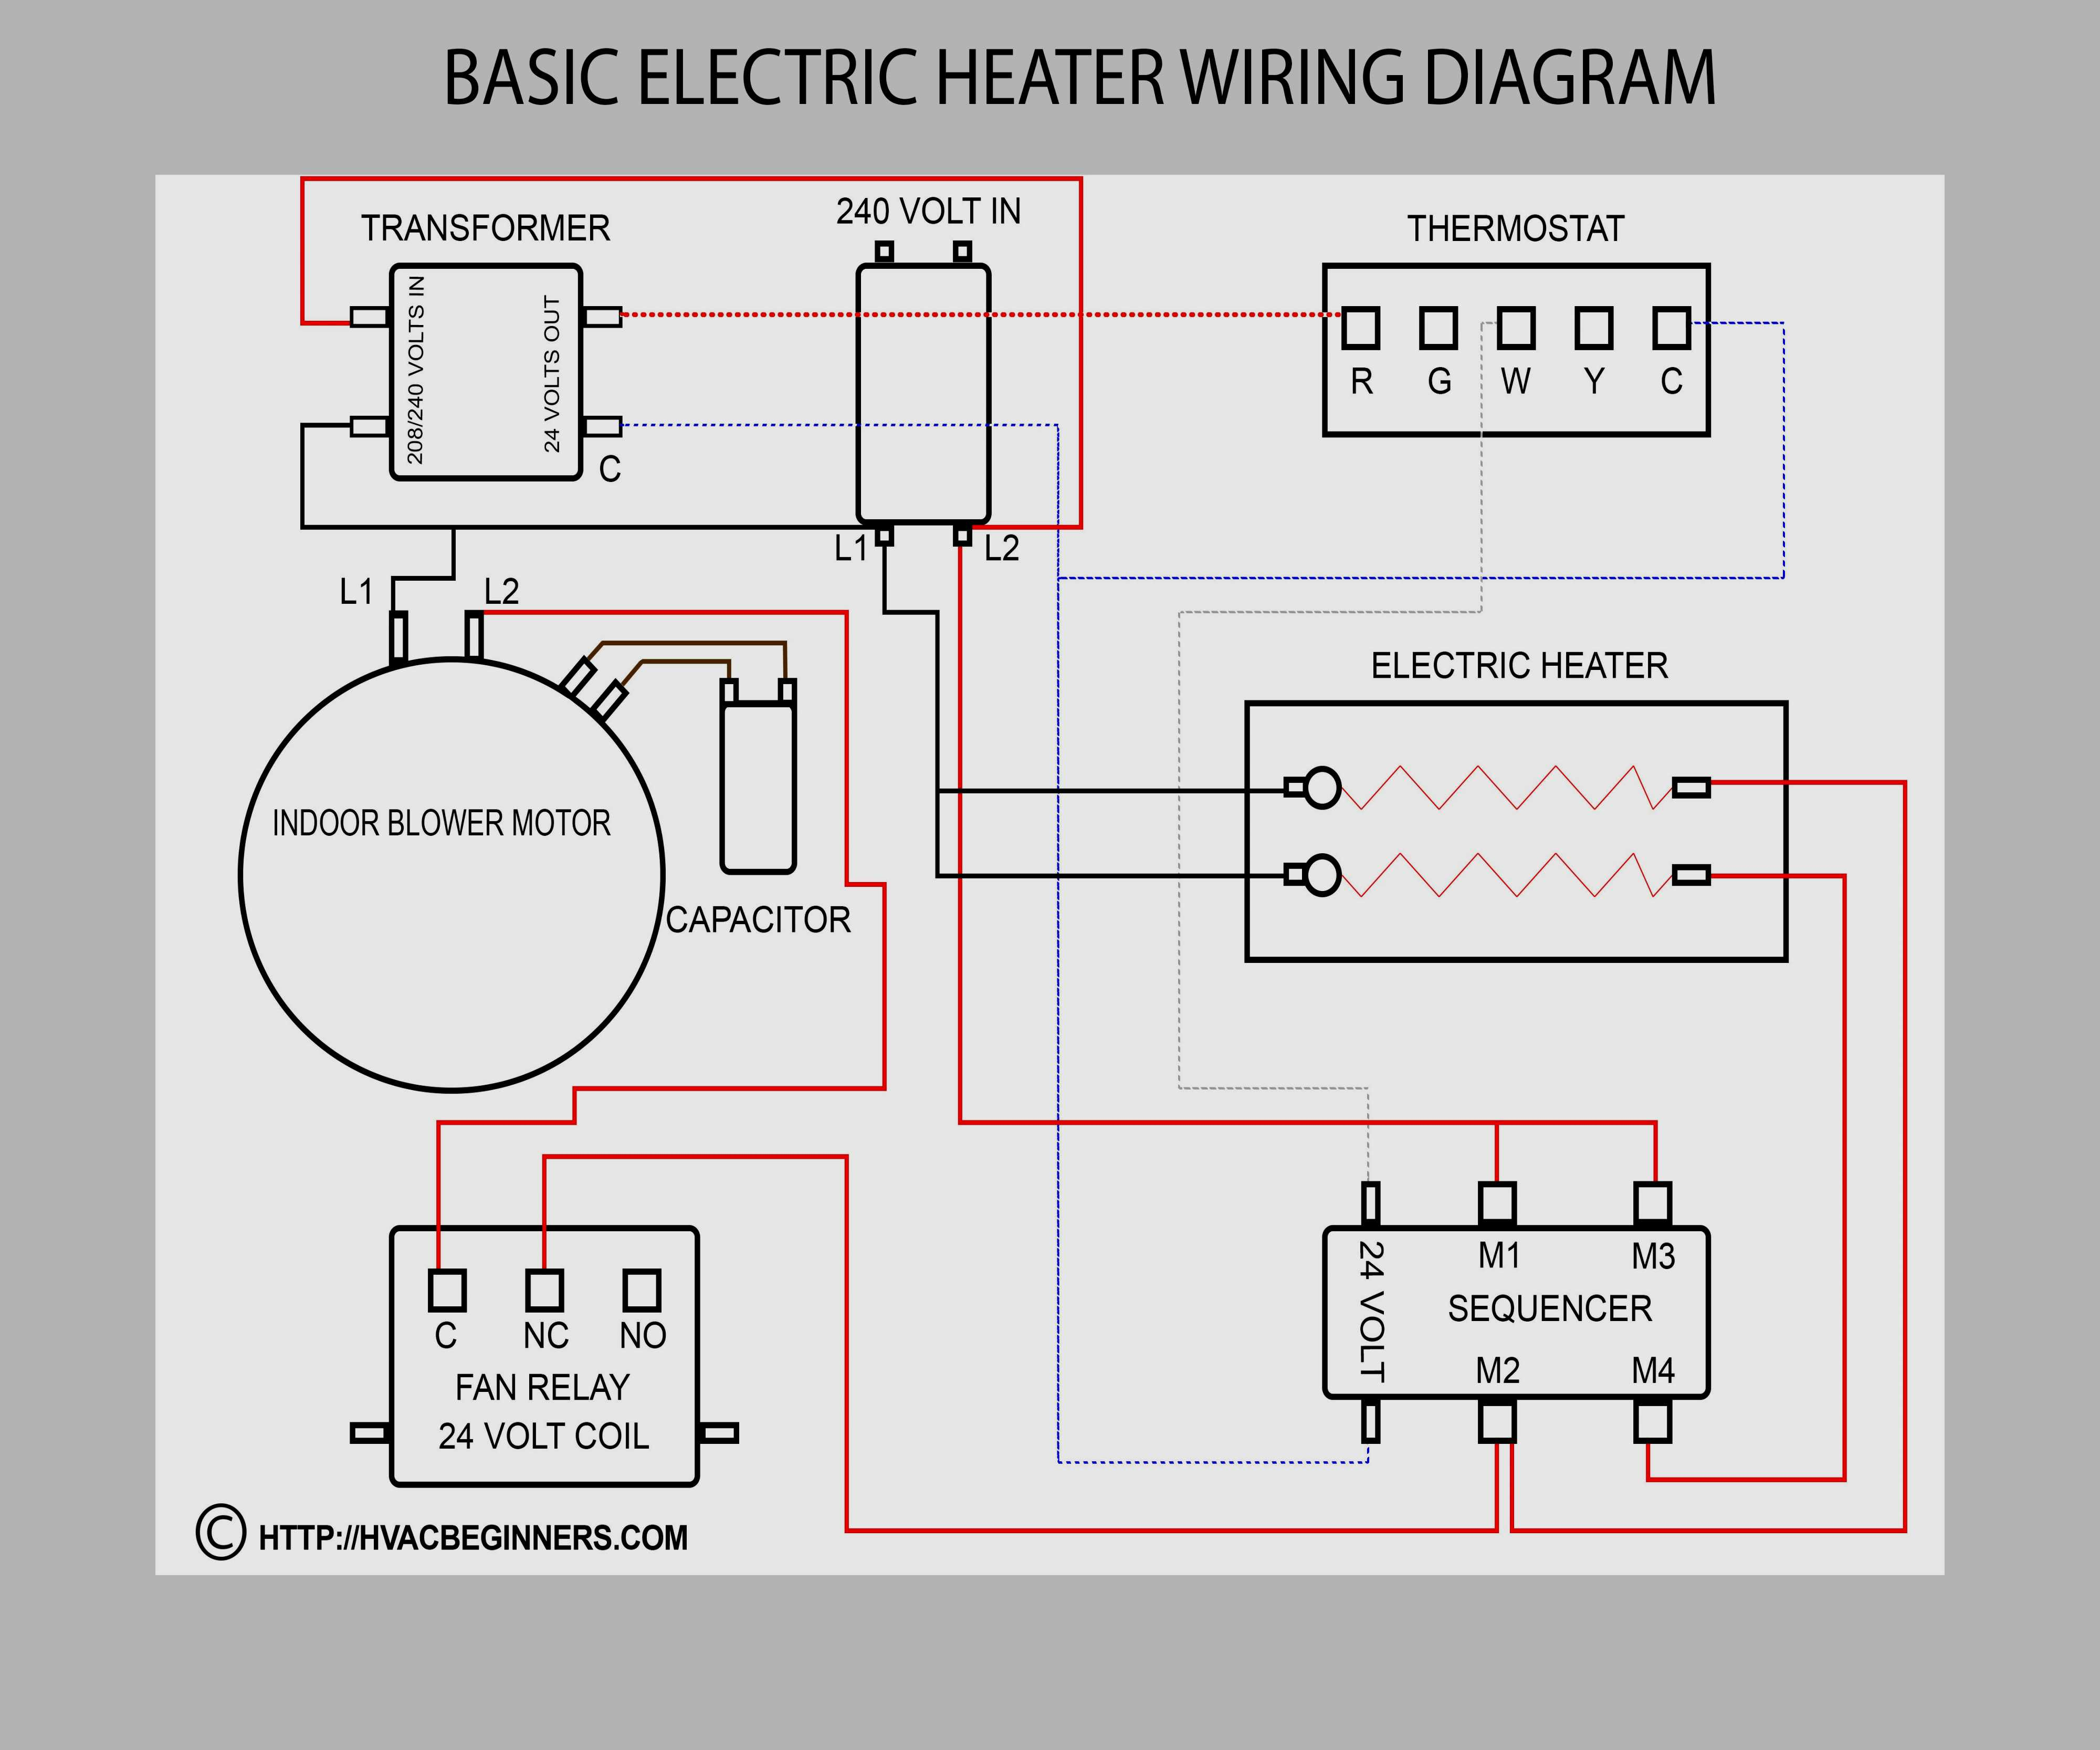 Carrier Air Conditioner Wiring Diagram - Trusted Wiring Diagram - Carrier Air Conditioner Wiring Diagram